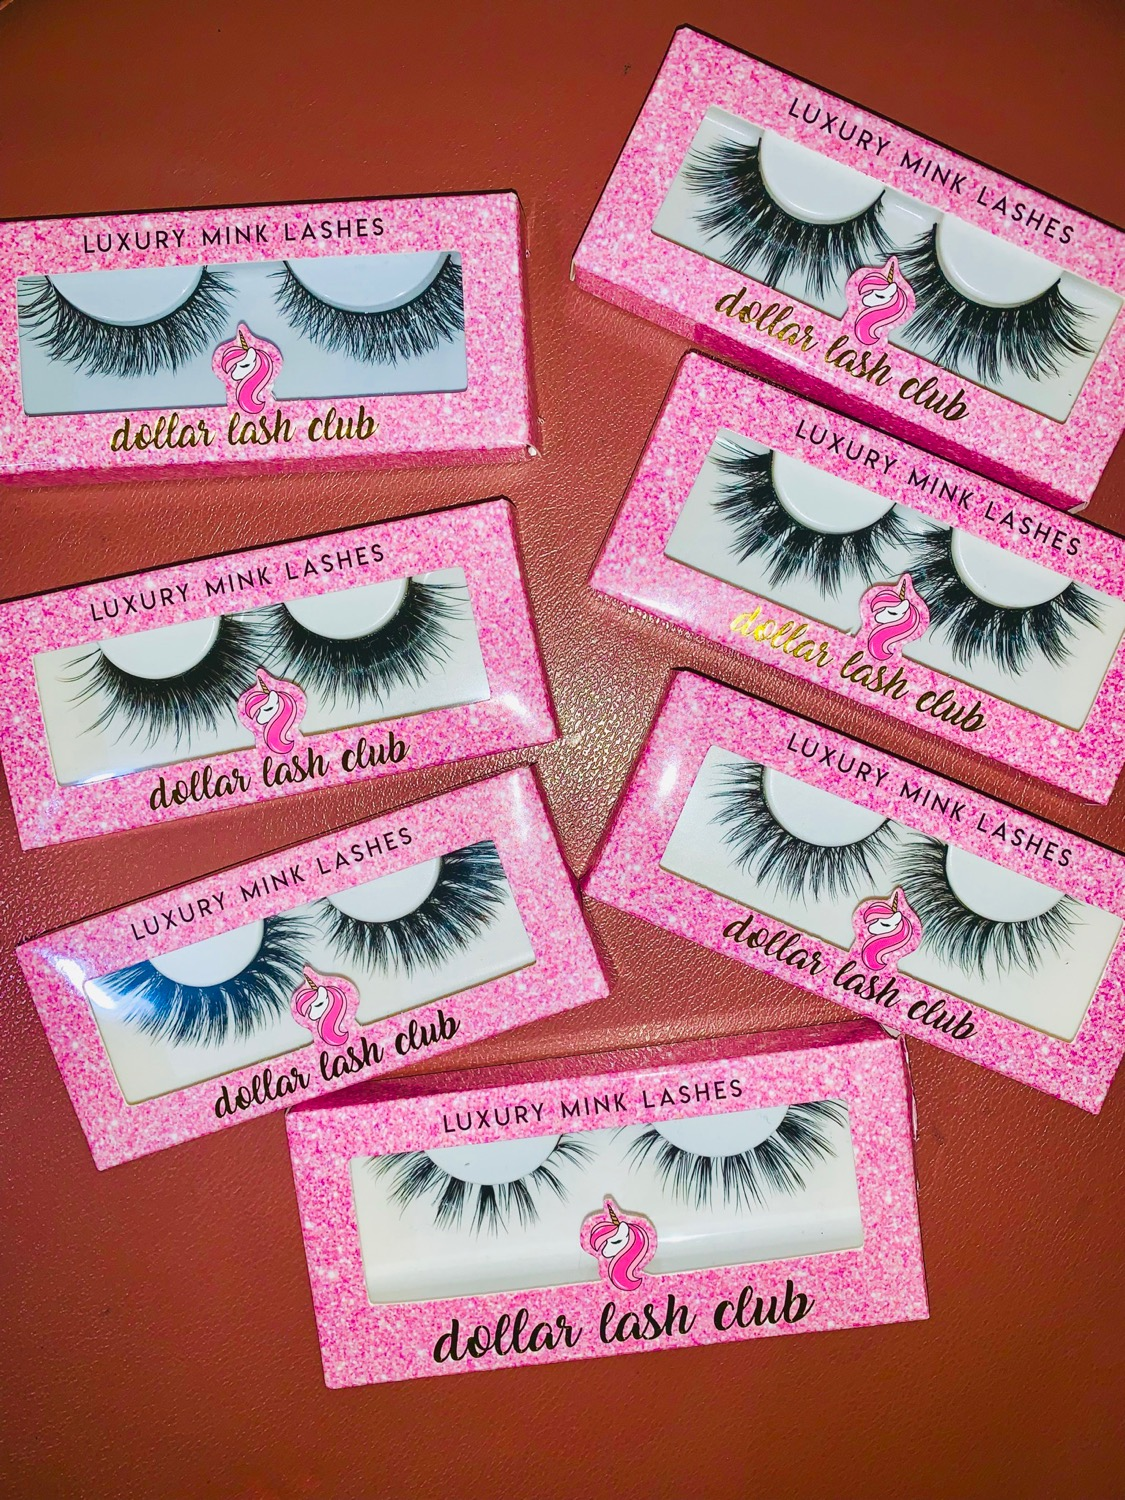 cc1b1a7a62a I love these lashes! There are many variety of lash styles to choose from.  They are definitely super cheap, compared to drugstore lashes and lasts the  same ...